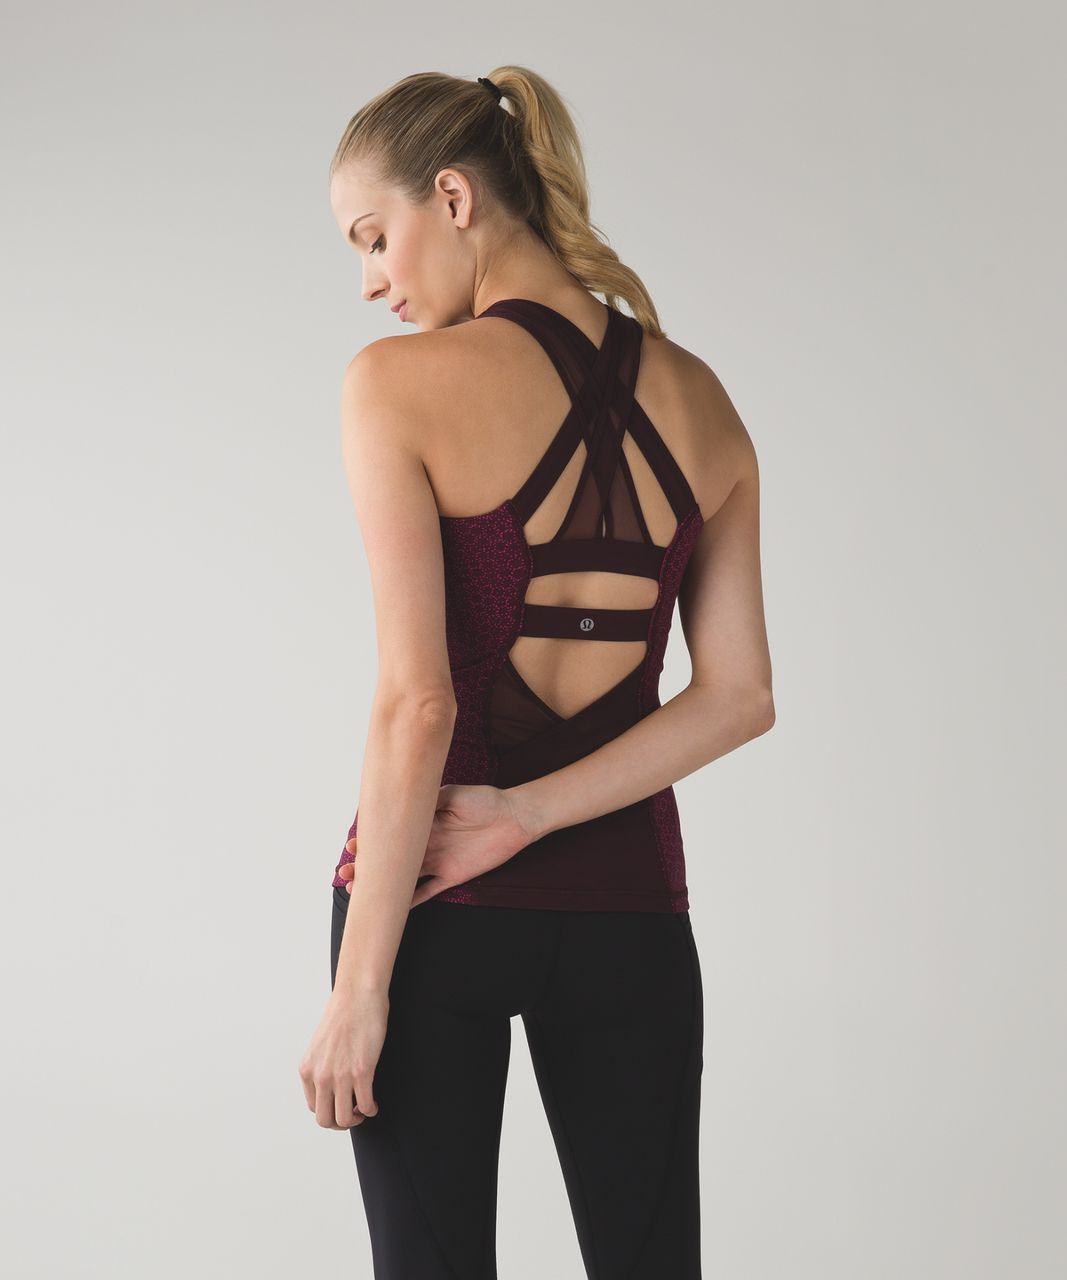 Lululemon Ready, Set, Sweat Tank - Star Pixel Raspberry Bordeaux Drama / Raspberry